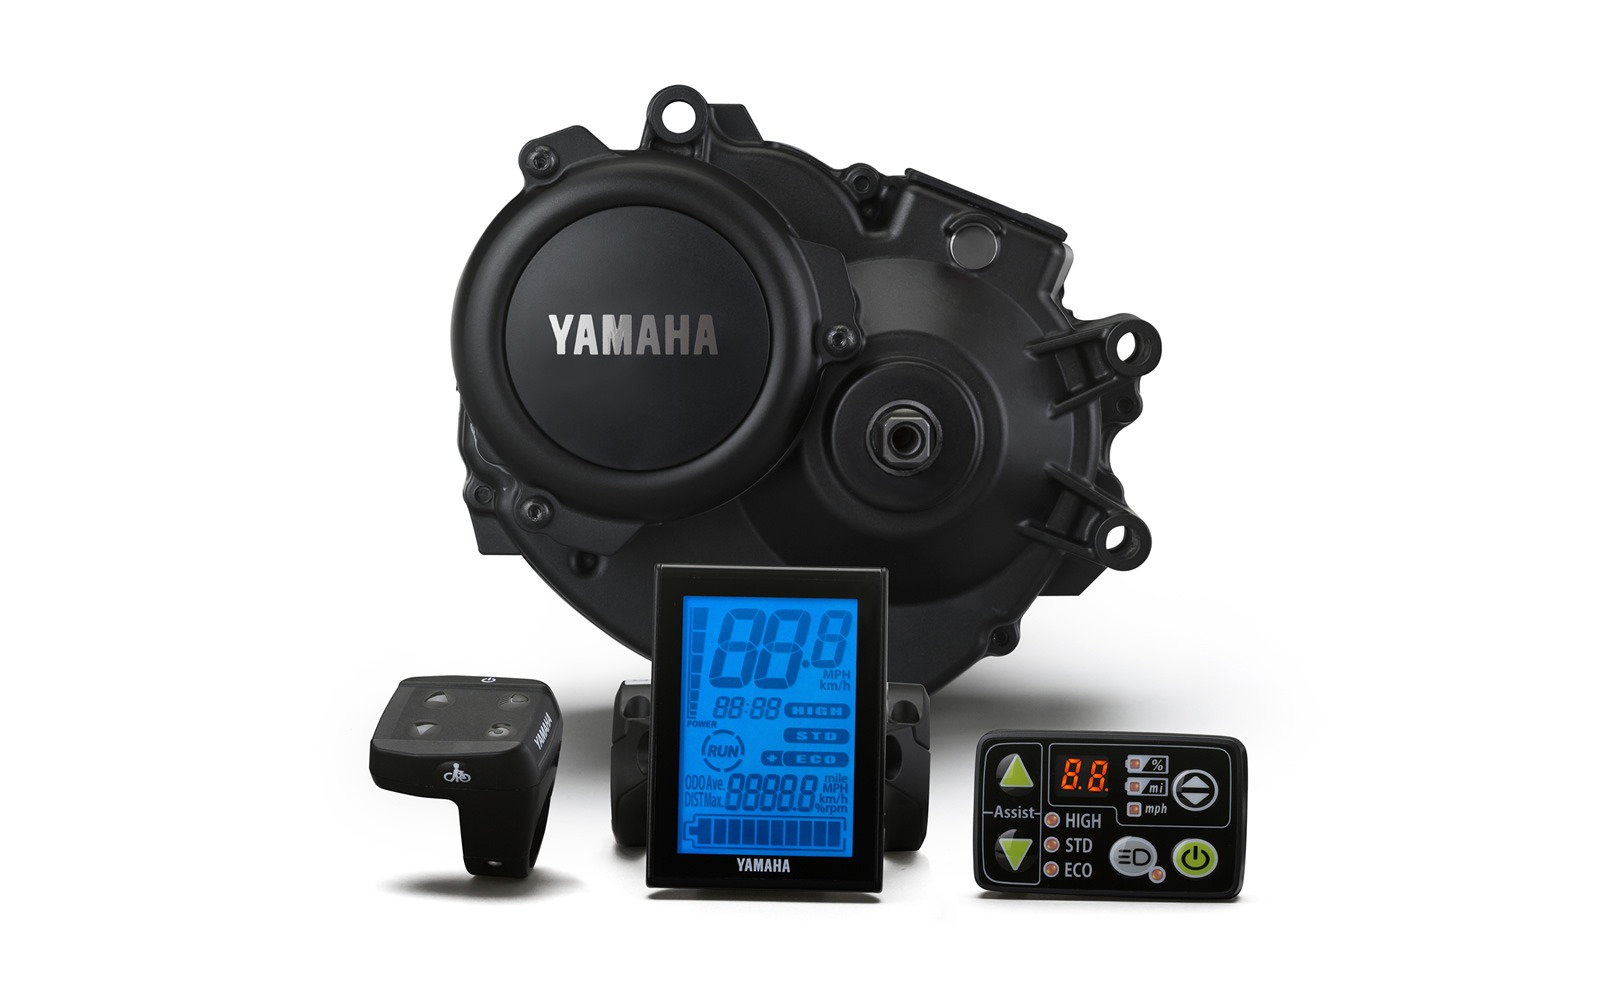 Yamaha PW-Serie - E-Bike-Motor und Displays